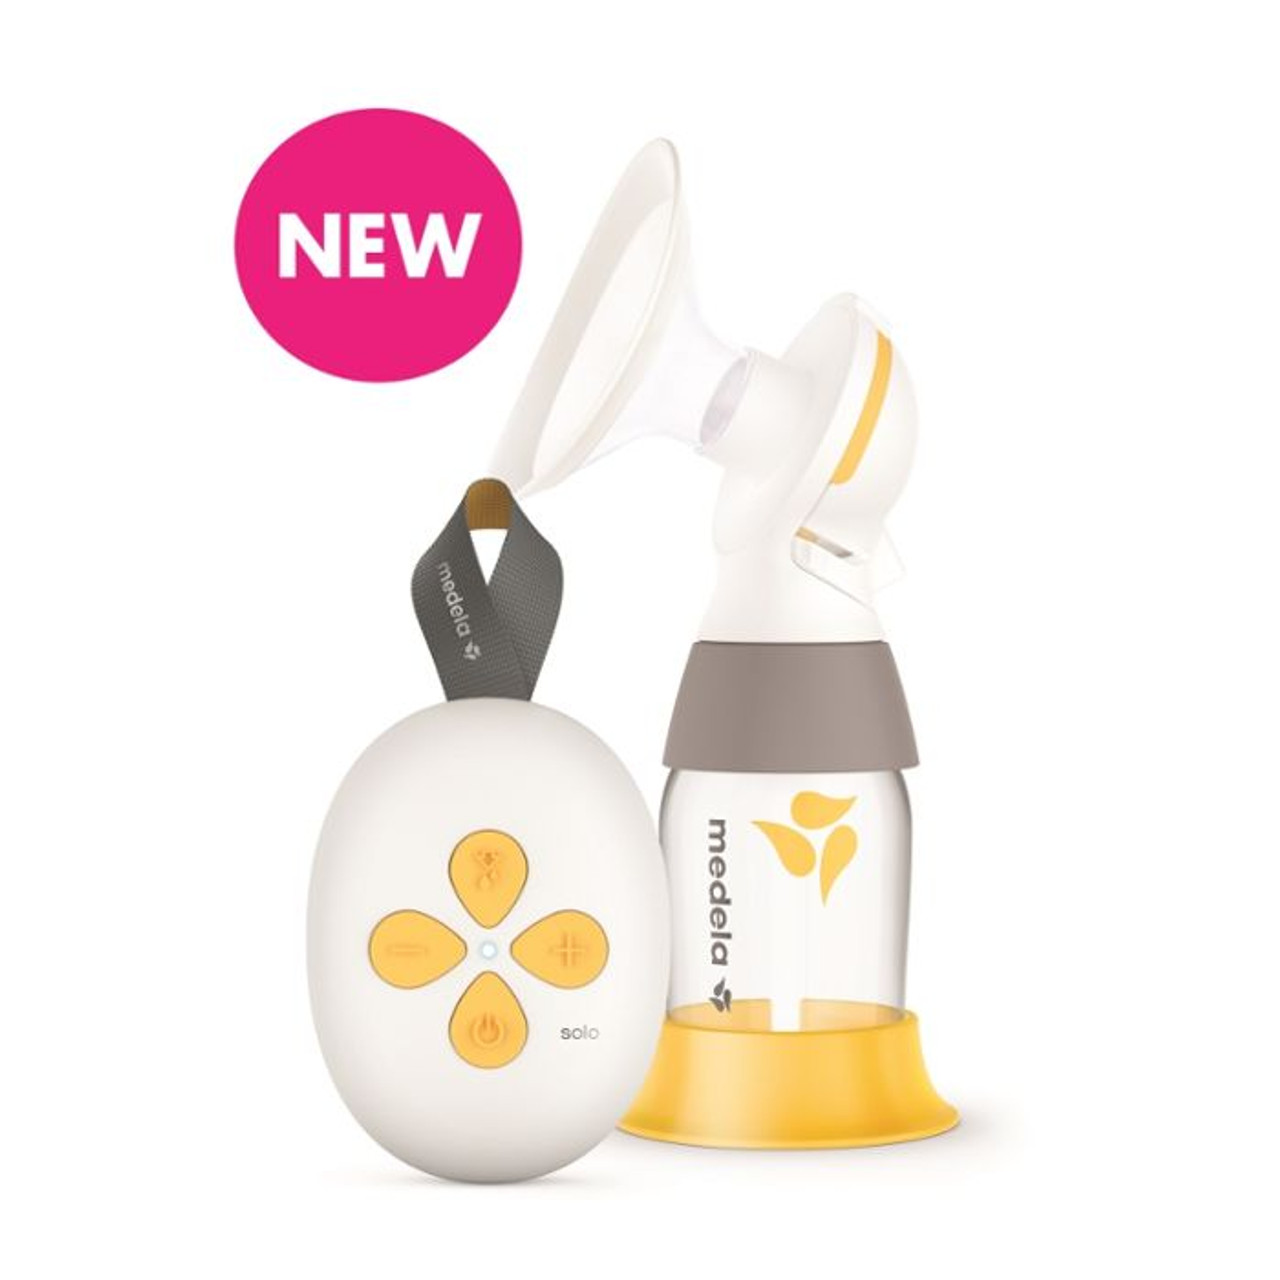 Medela Solo Single Electric Breastpump at Baby Barn Discounts Solo™ is a compact, effective and easy to use single electric breast pump with rechargeable built in battery, 2-phase Expression® technology and PersonalFit Flex™ breast shield.